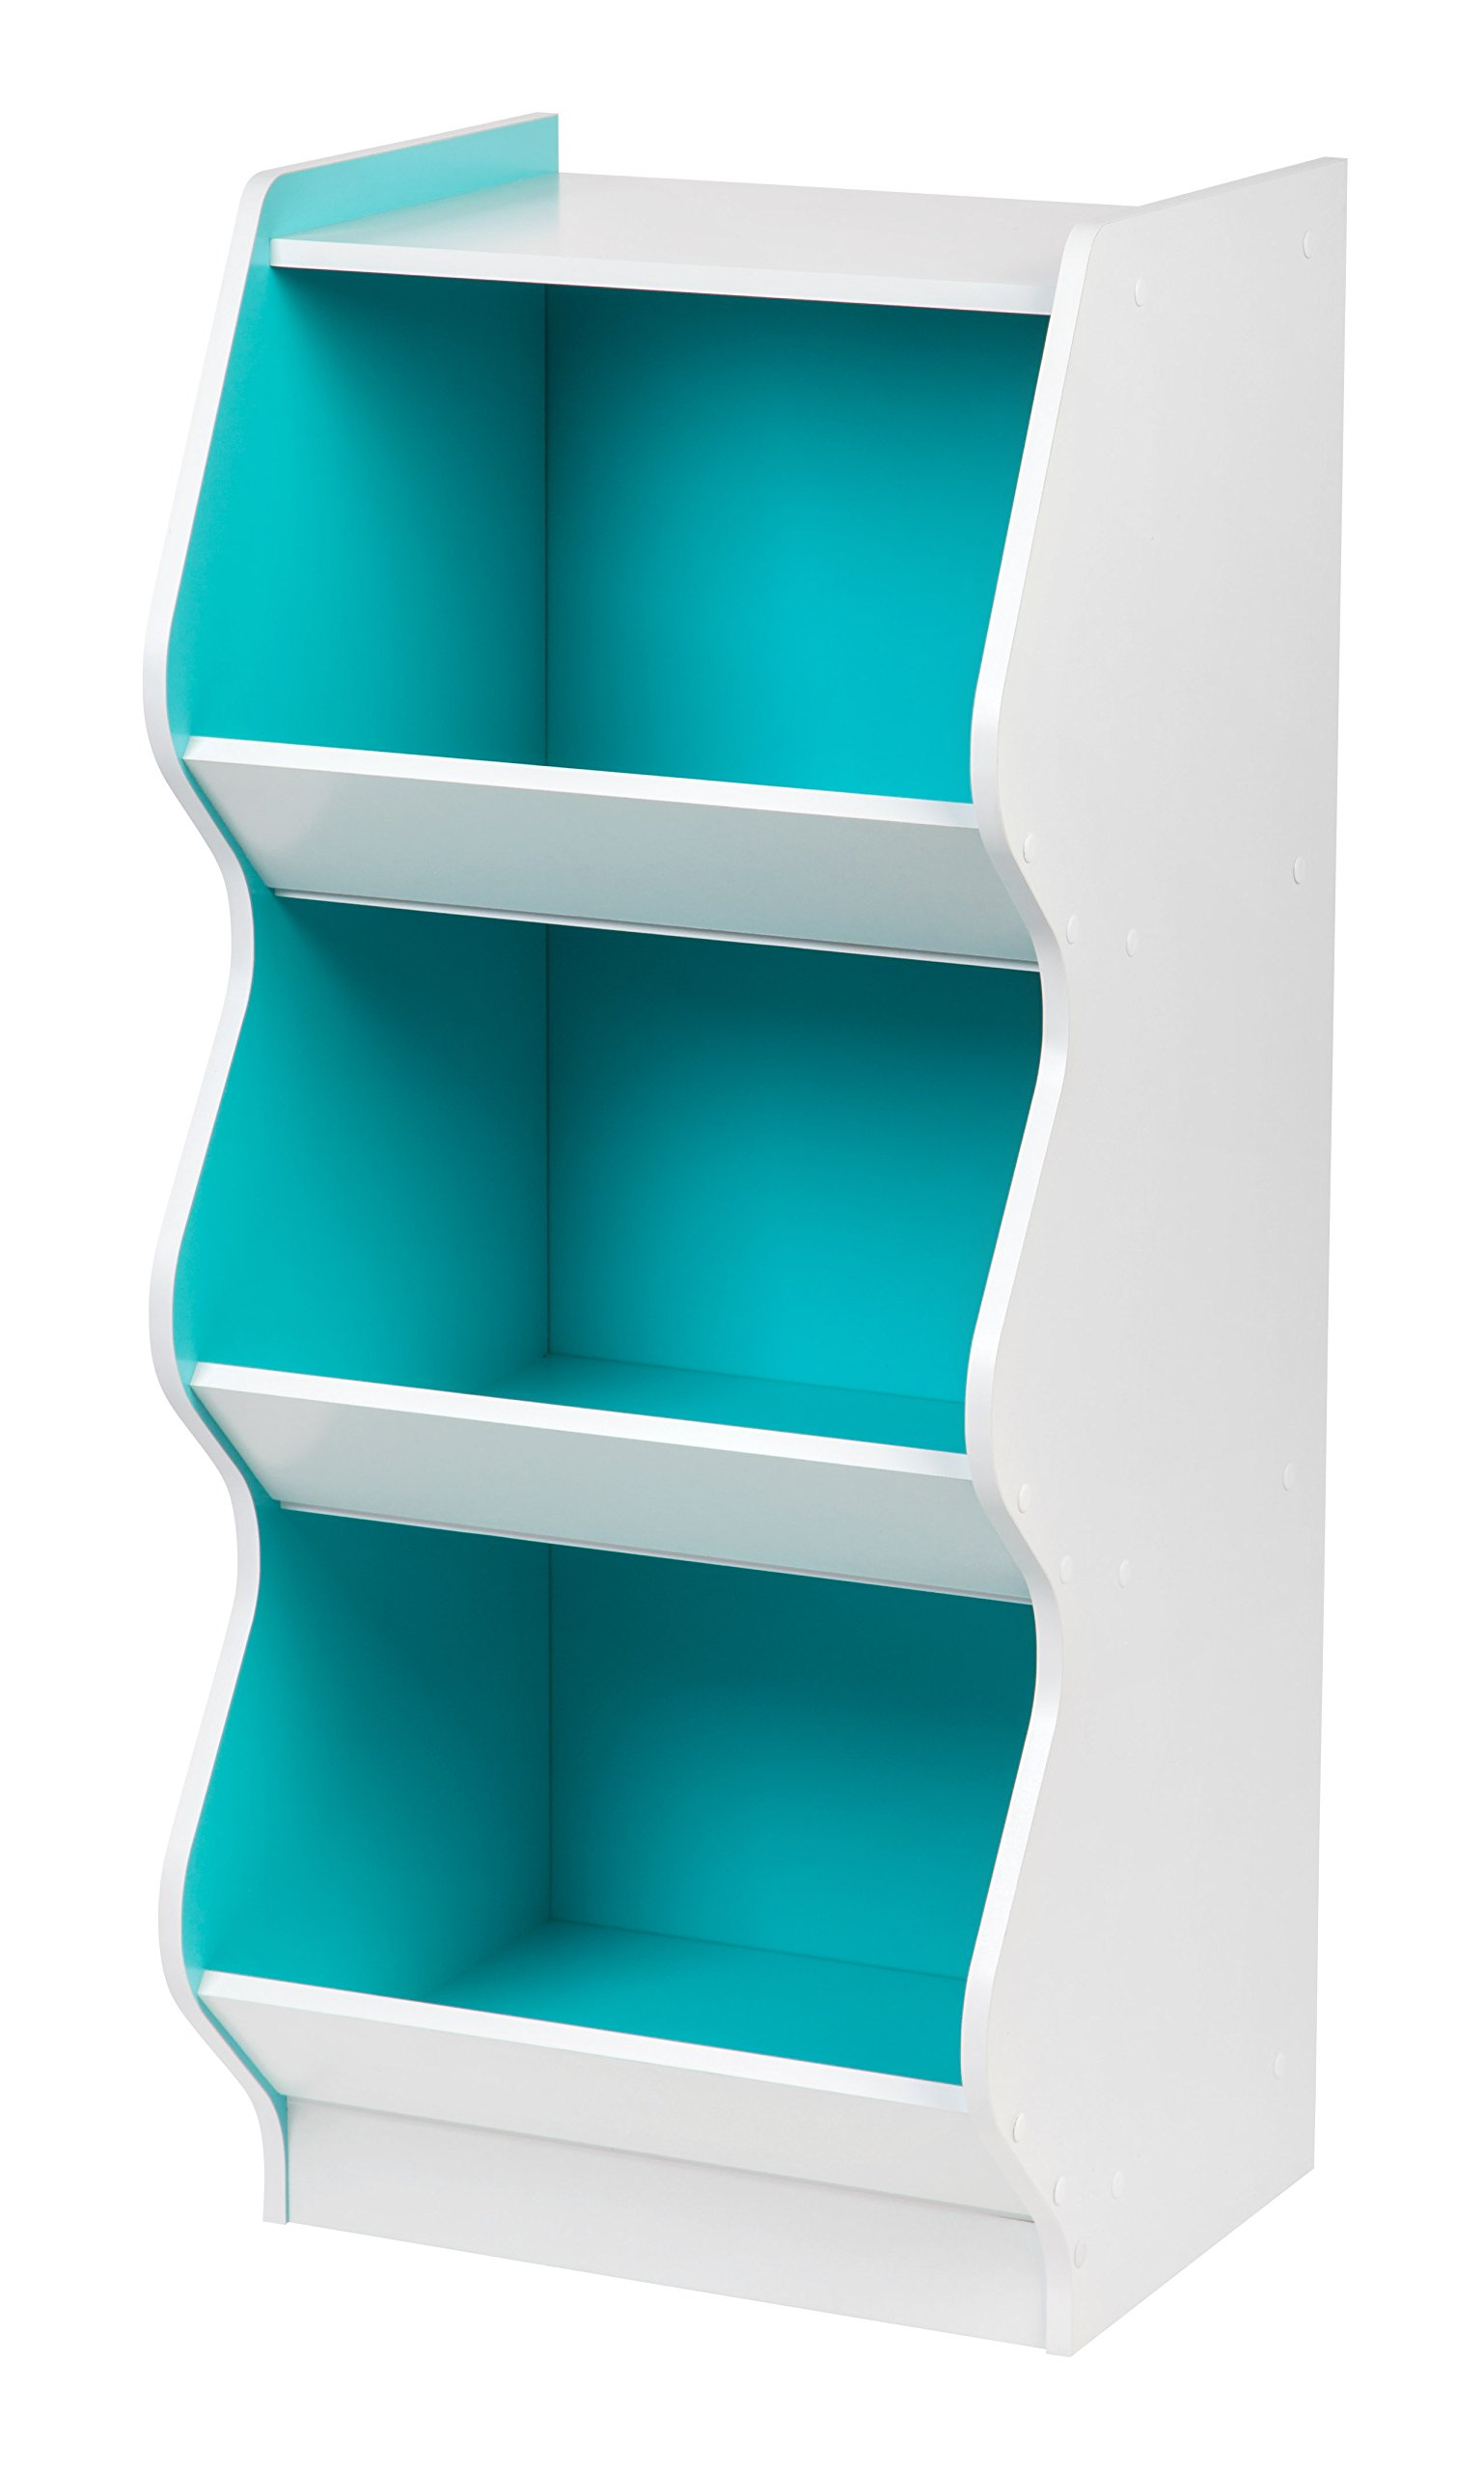 IRIS 3 Tier Curved Edge Storage Shelf, White and Blue